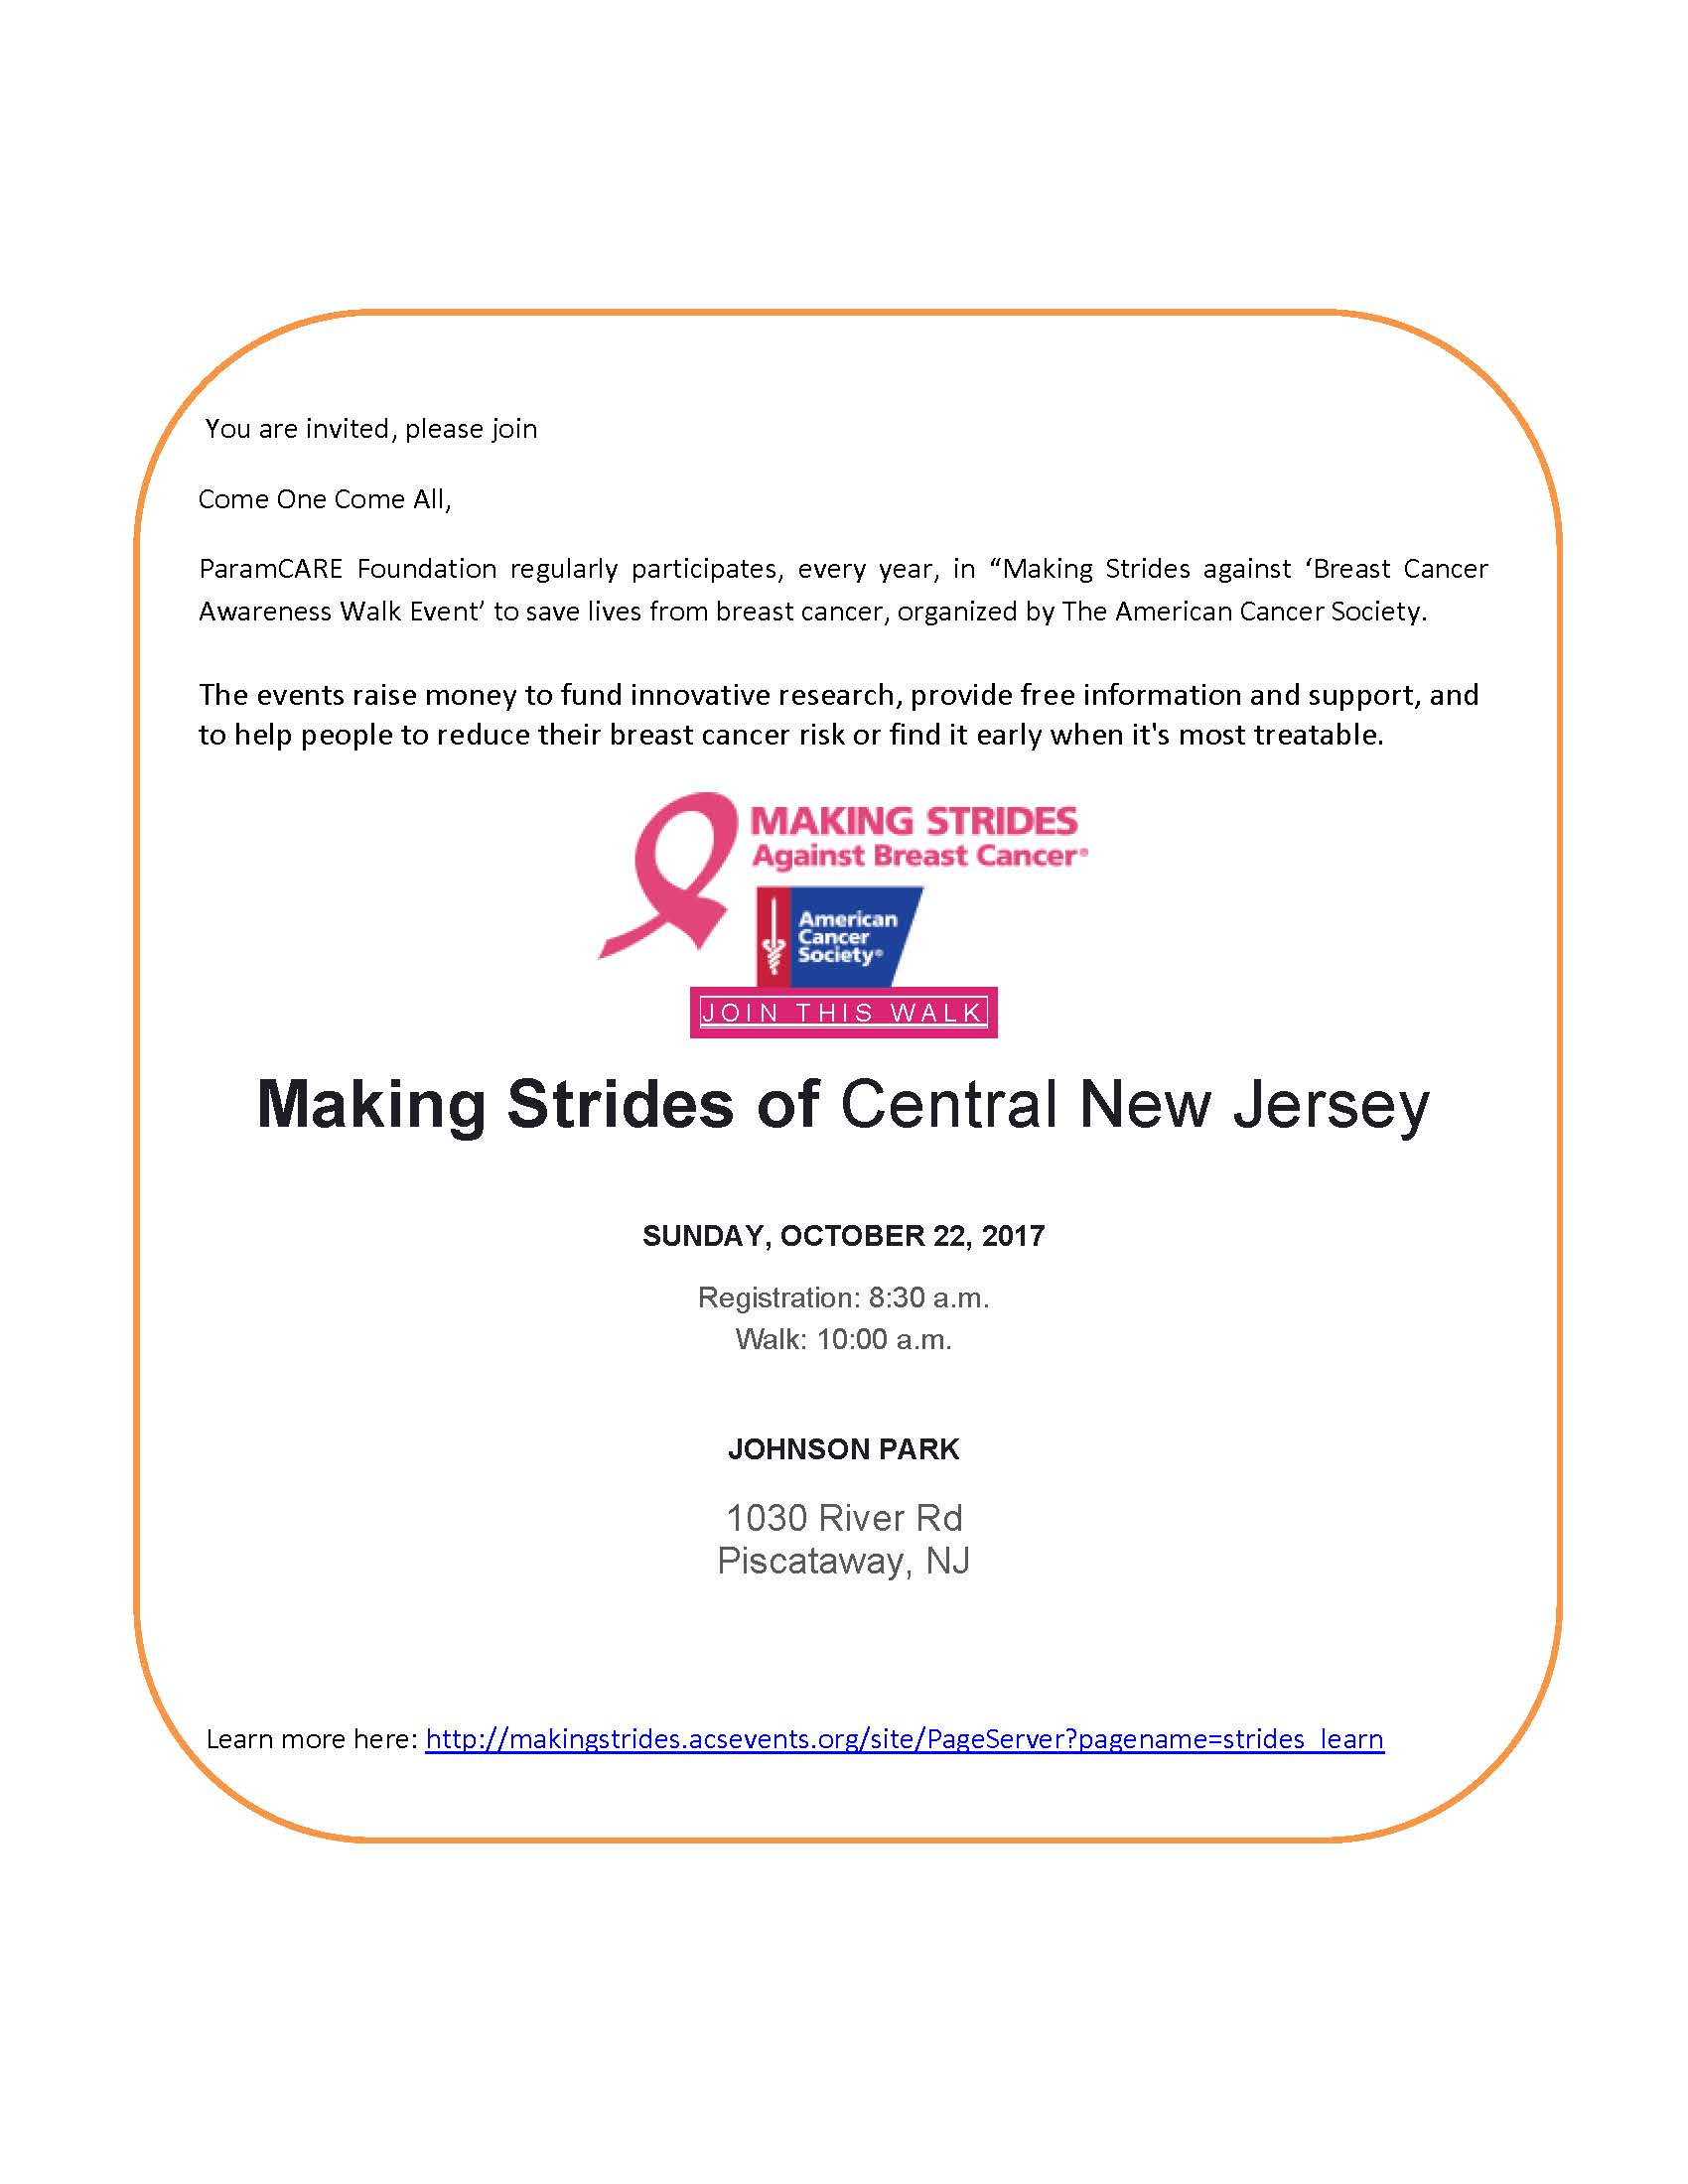 Making Strides of Central New Jersey